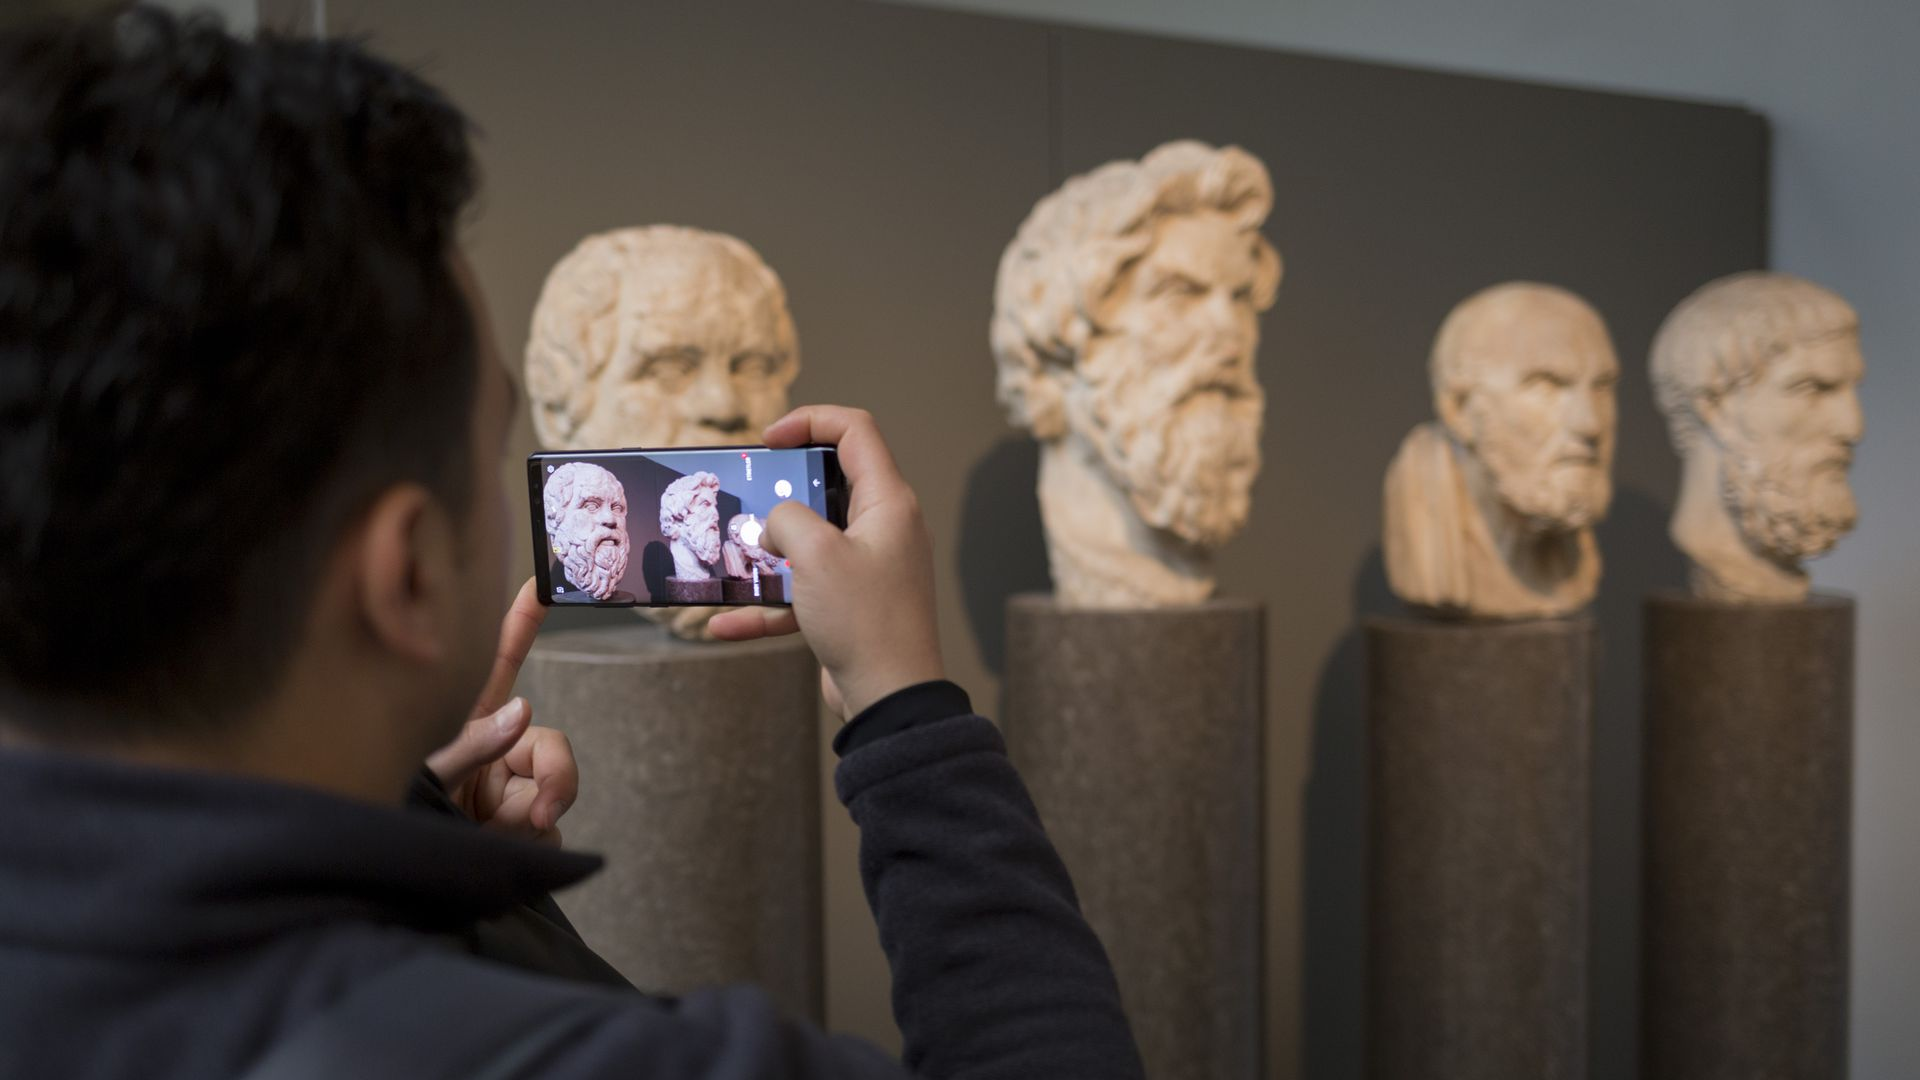 A visitor to the British museum takes a photo on his smartphone.